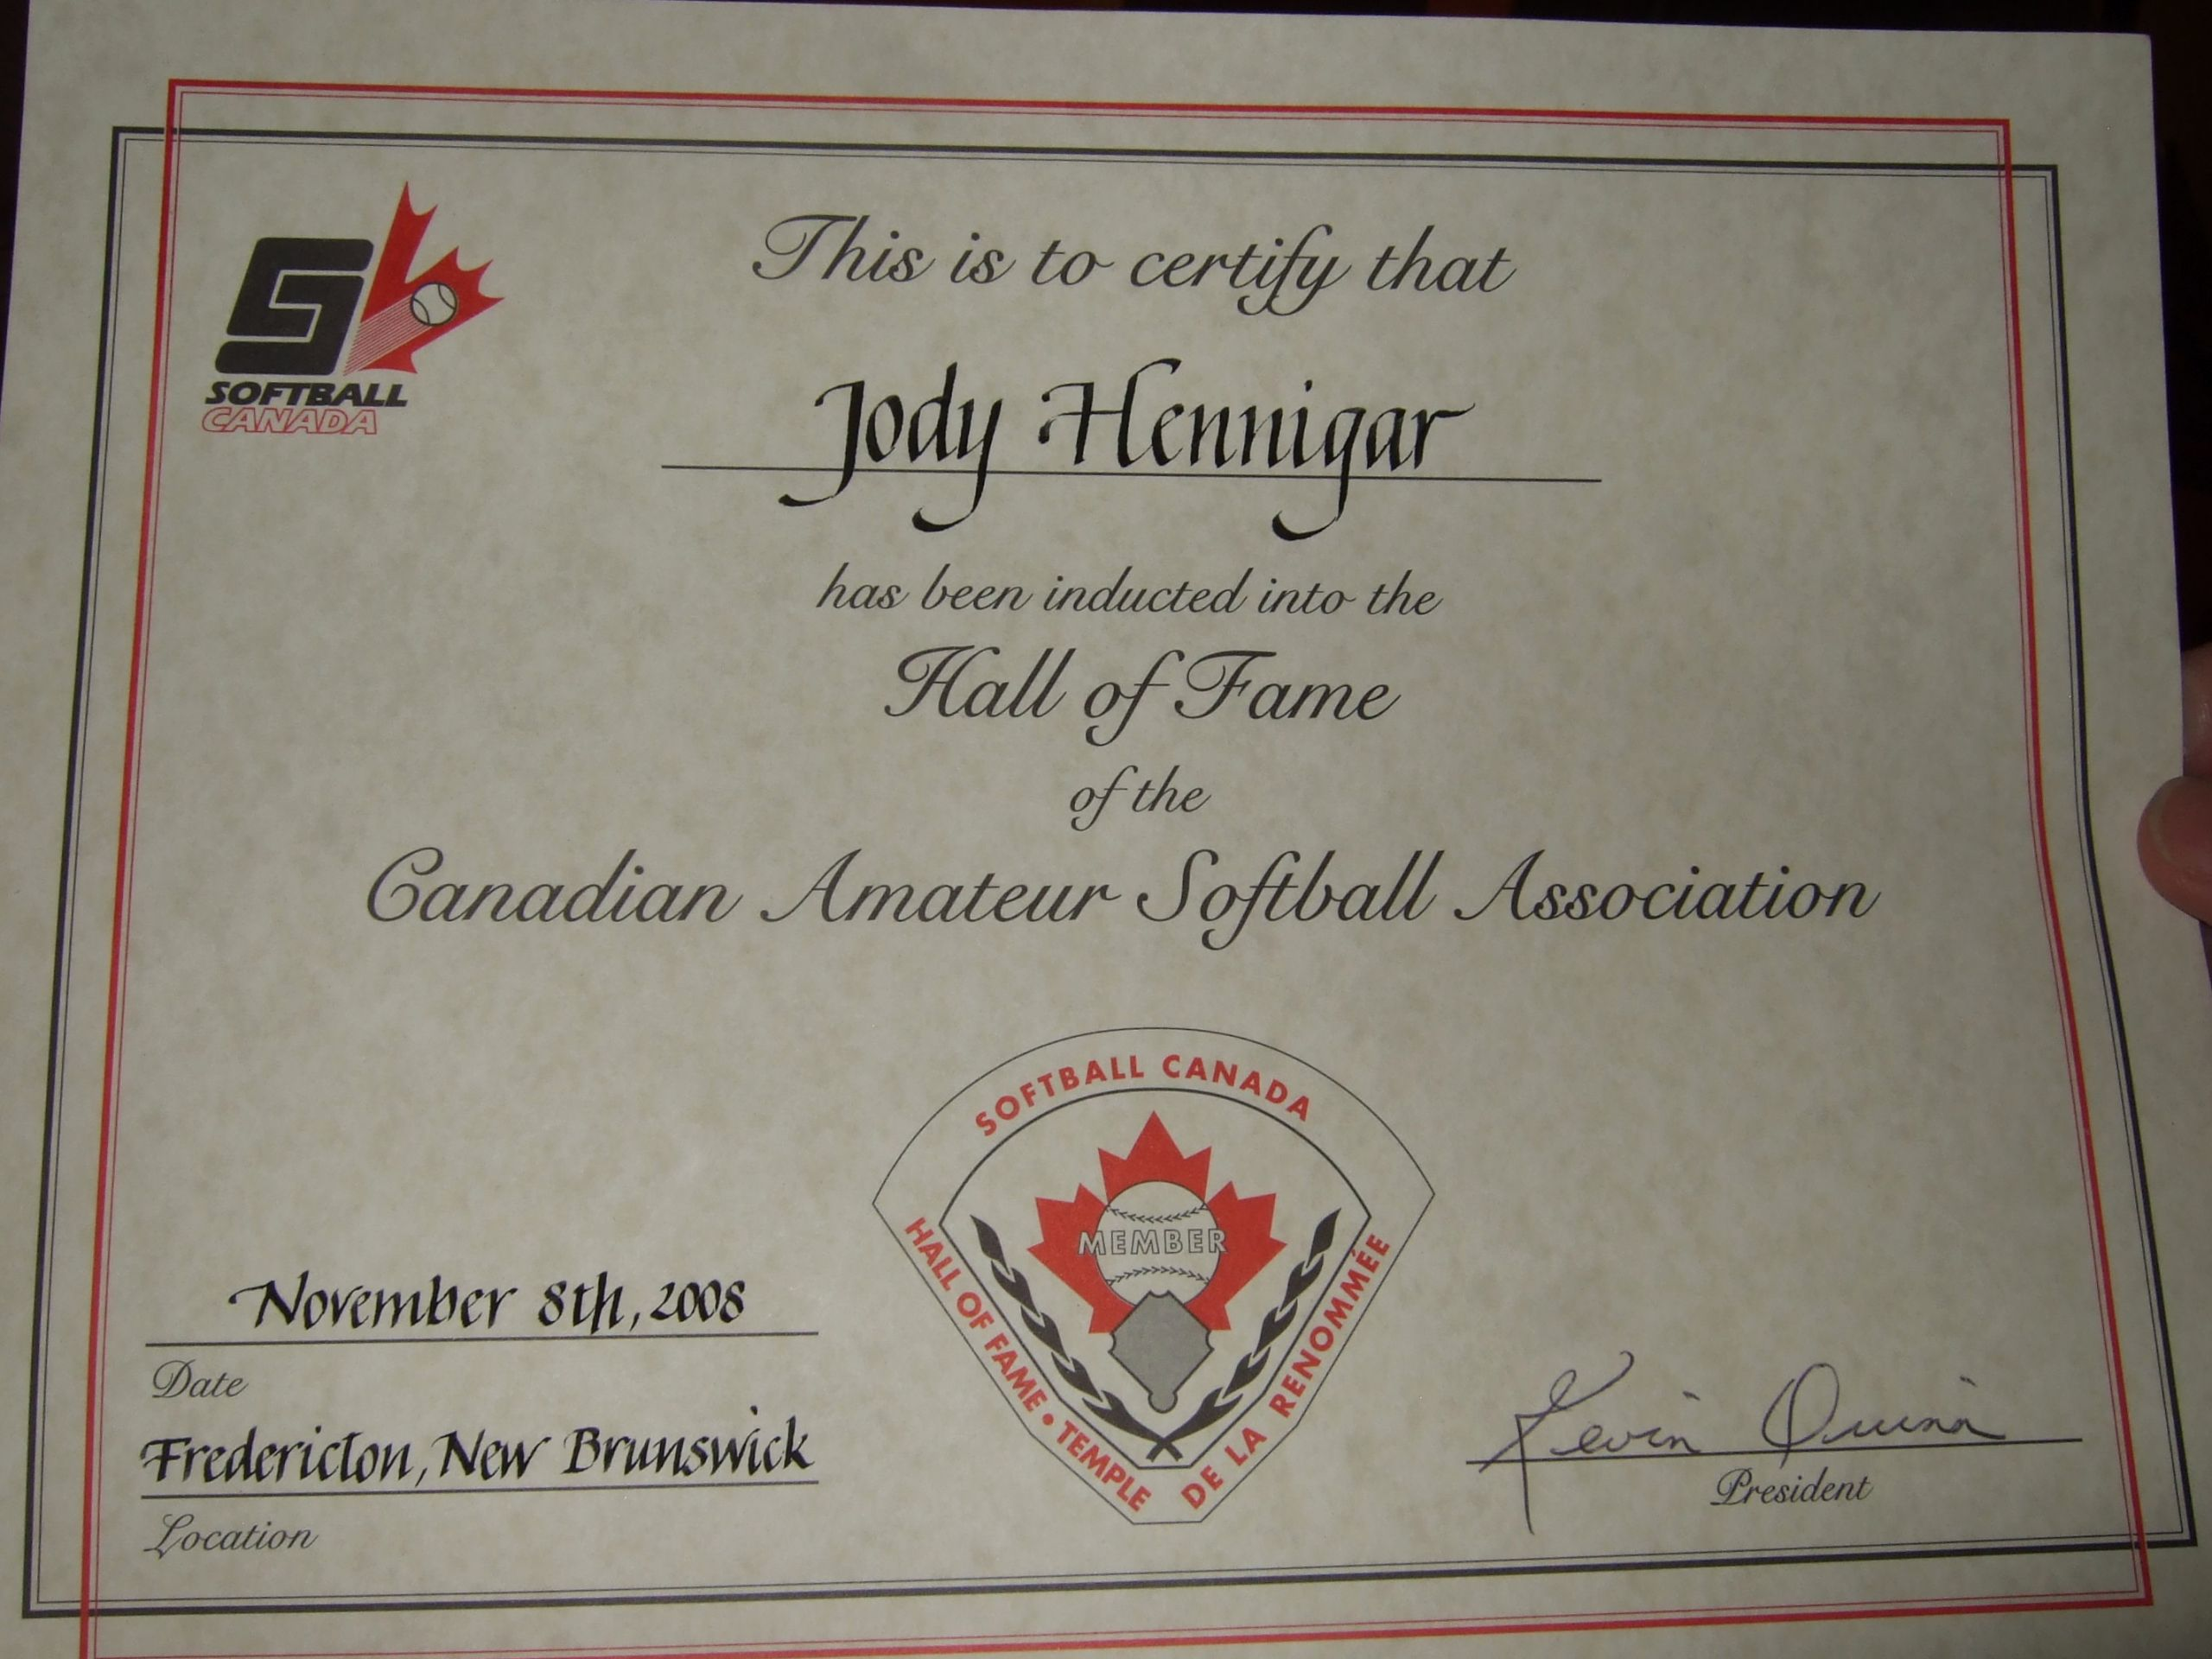 Hall Of Fame Certificate Lovely toronto Gators